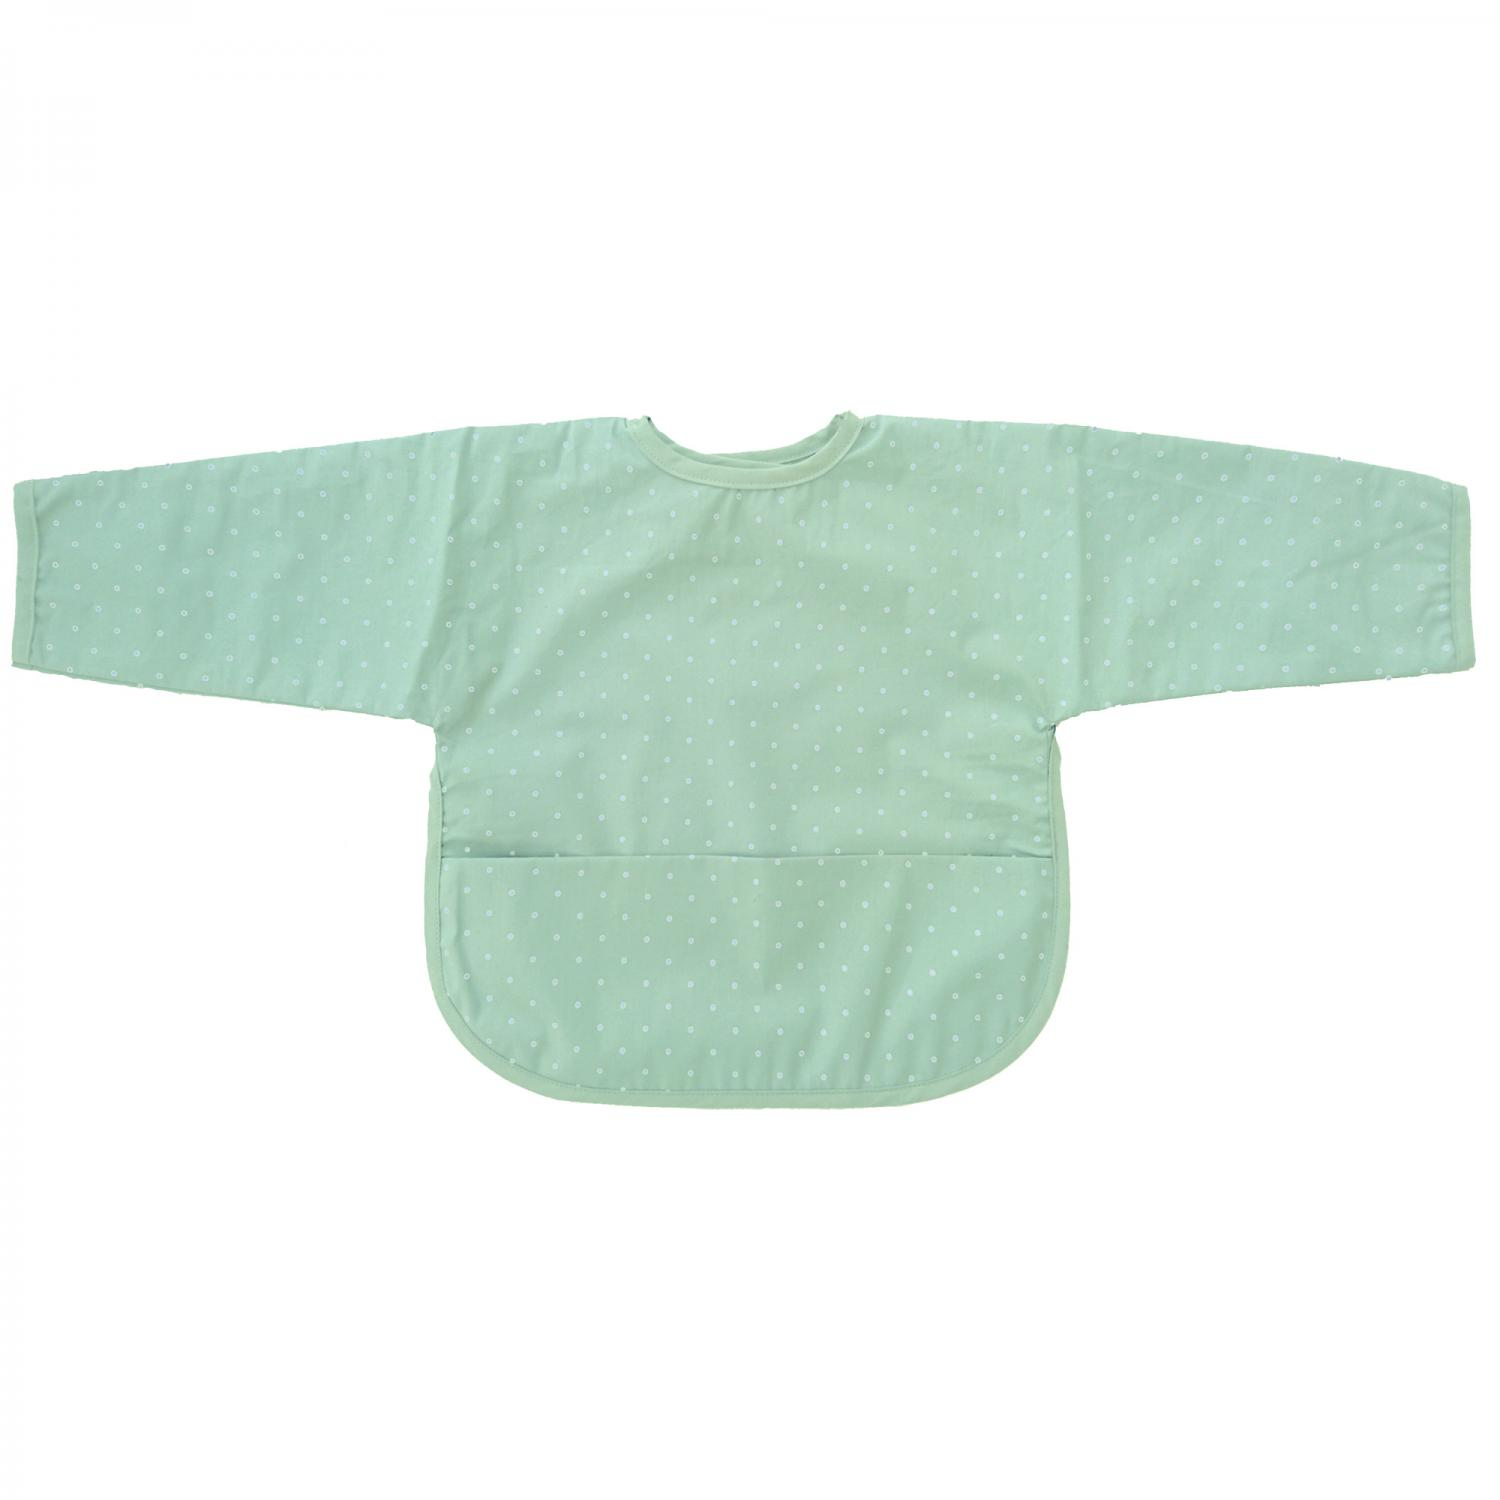 Bib with sleeves soft mint dotty